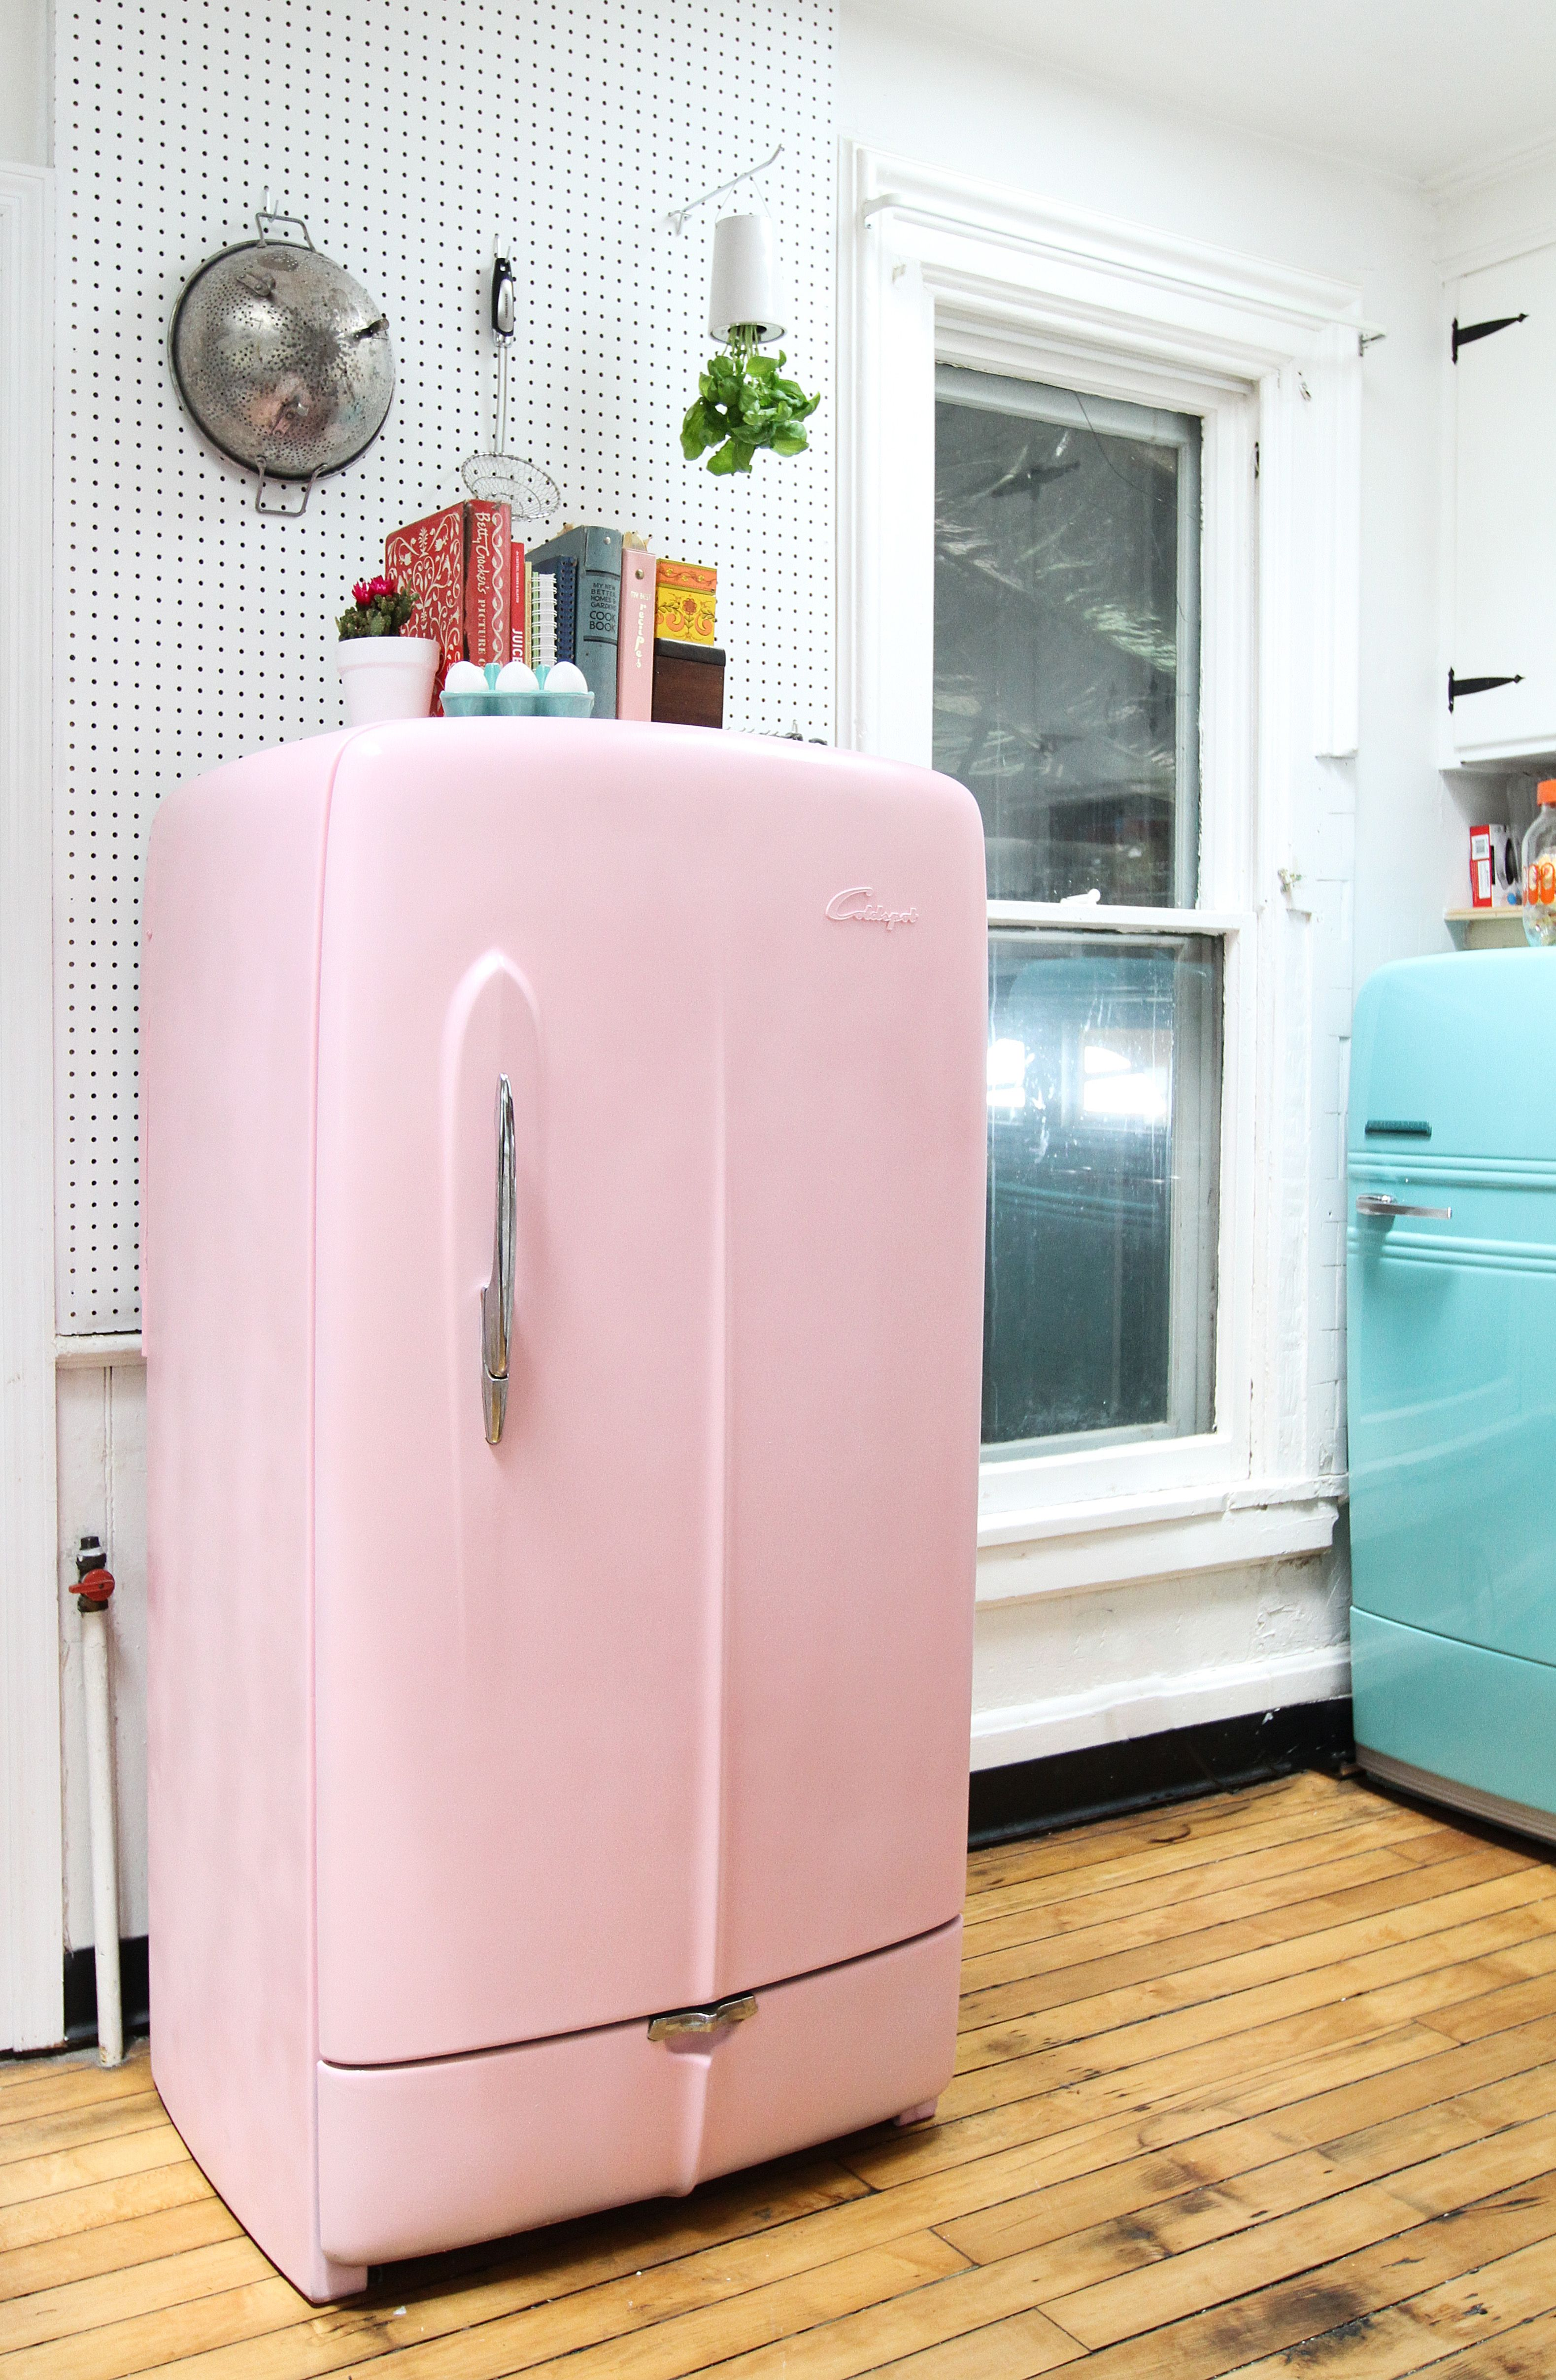 Wishing For A Colorful Smeg Fridge Heres How To Paint Vintage Refrigerator Instead Apartment Therapy Tutorials